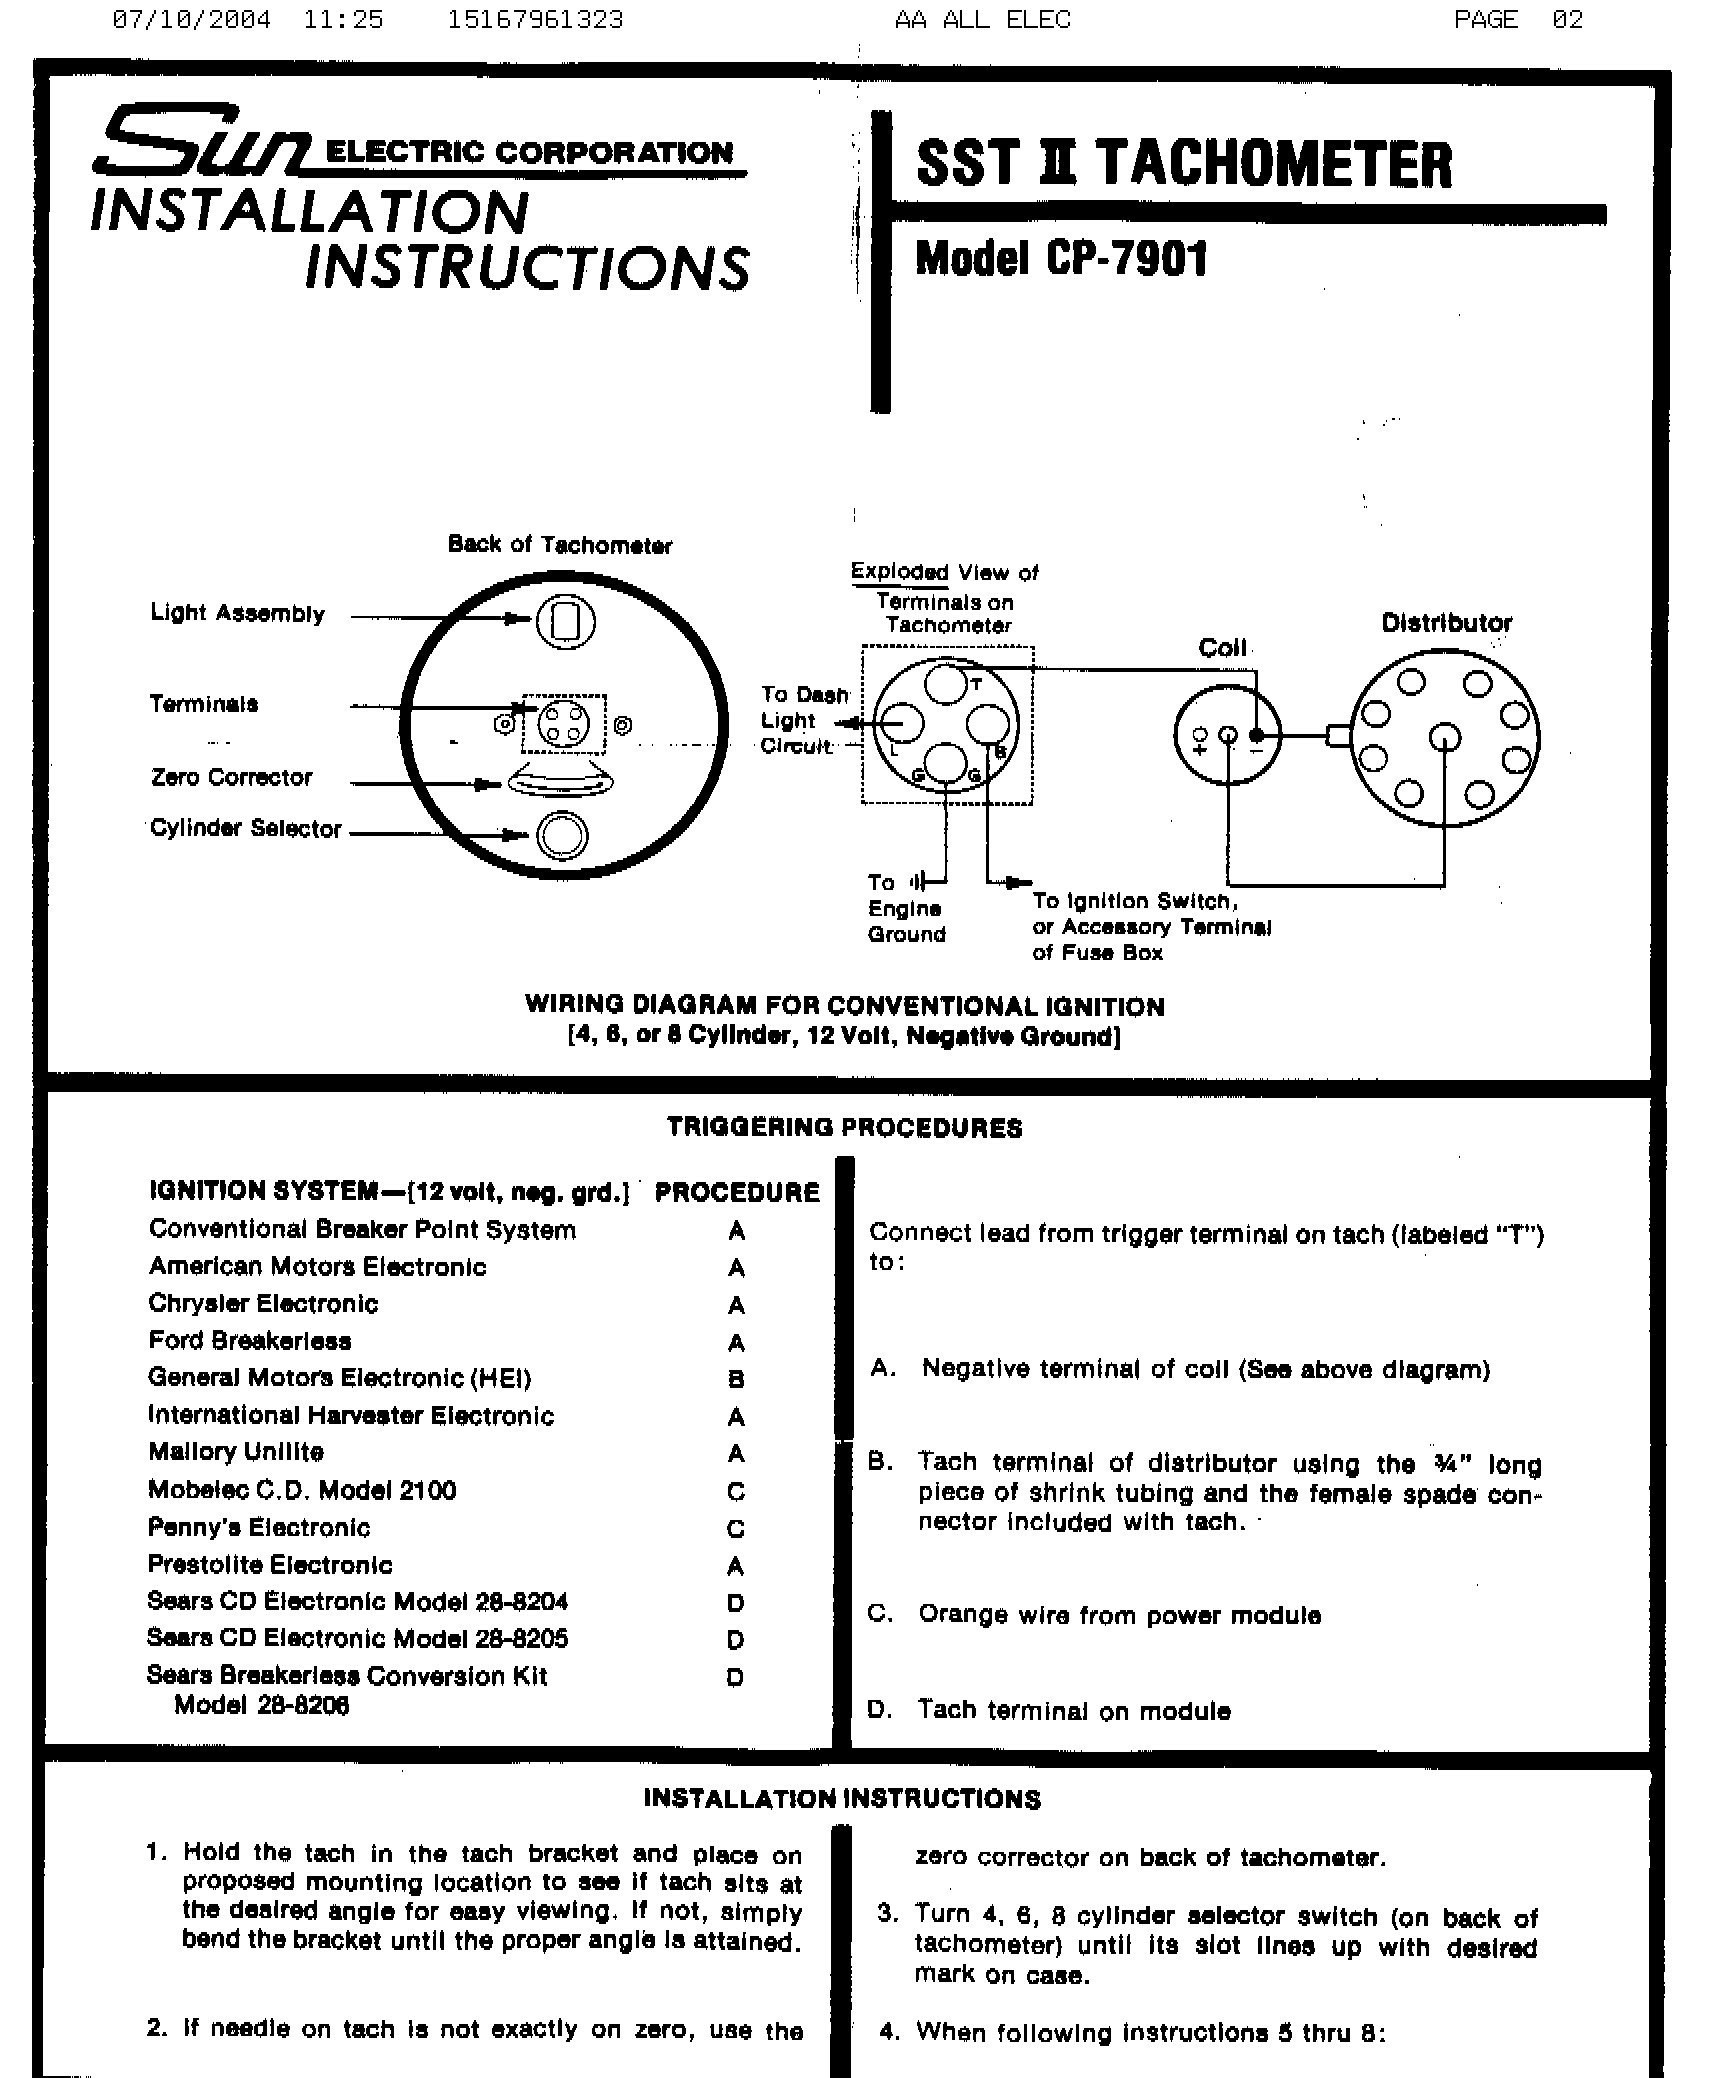 Sunpro Tach Wiring Diagram New Tachometer Blurts Within - Sunpro Tach Wiring Diagram